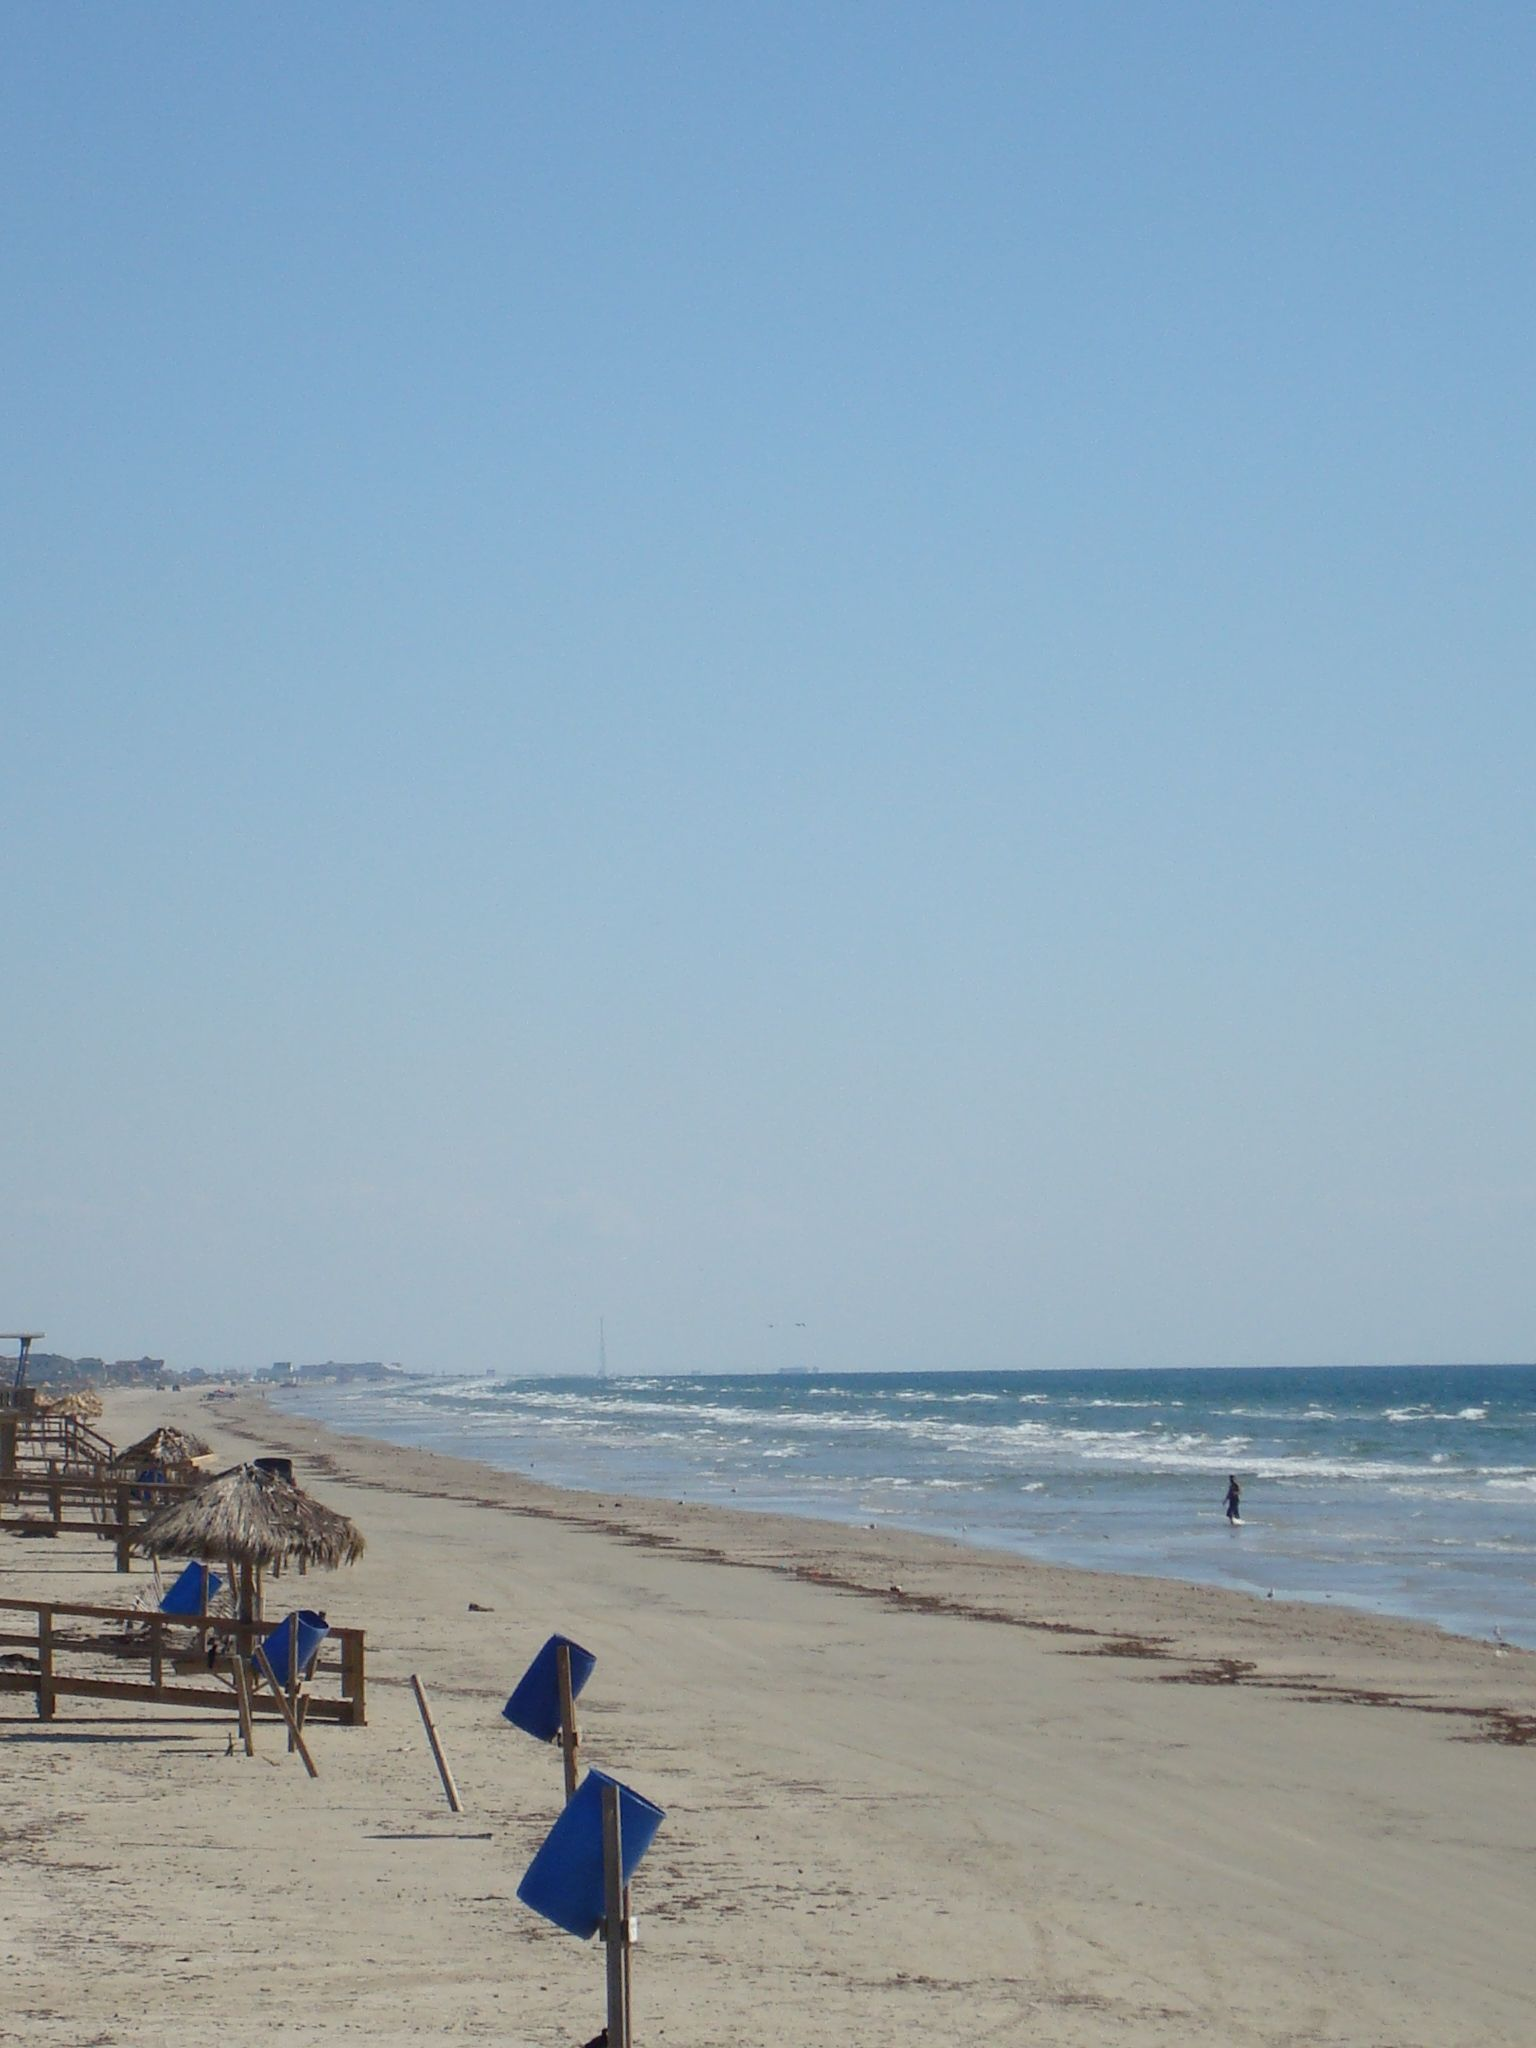 Surfside Beach Texas Surfside Beach Texas Surfside Beach Galveston Beach